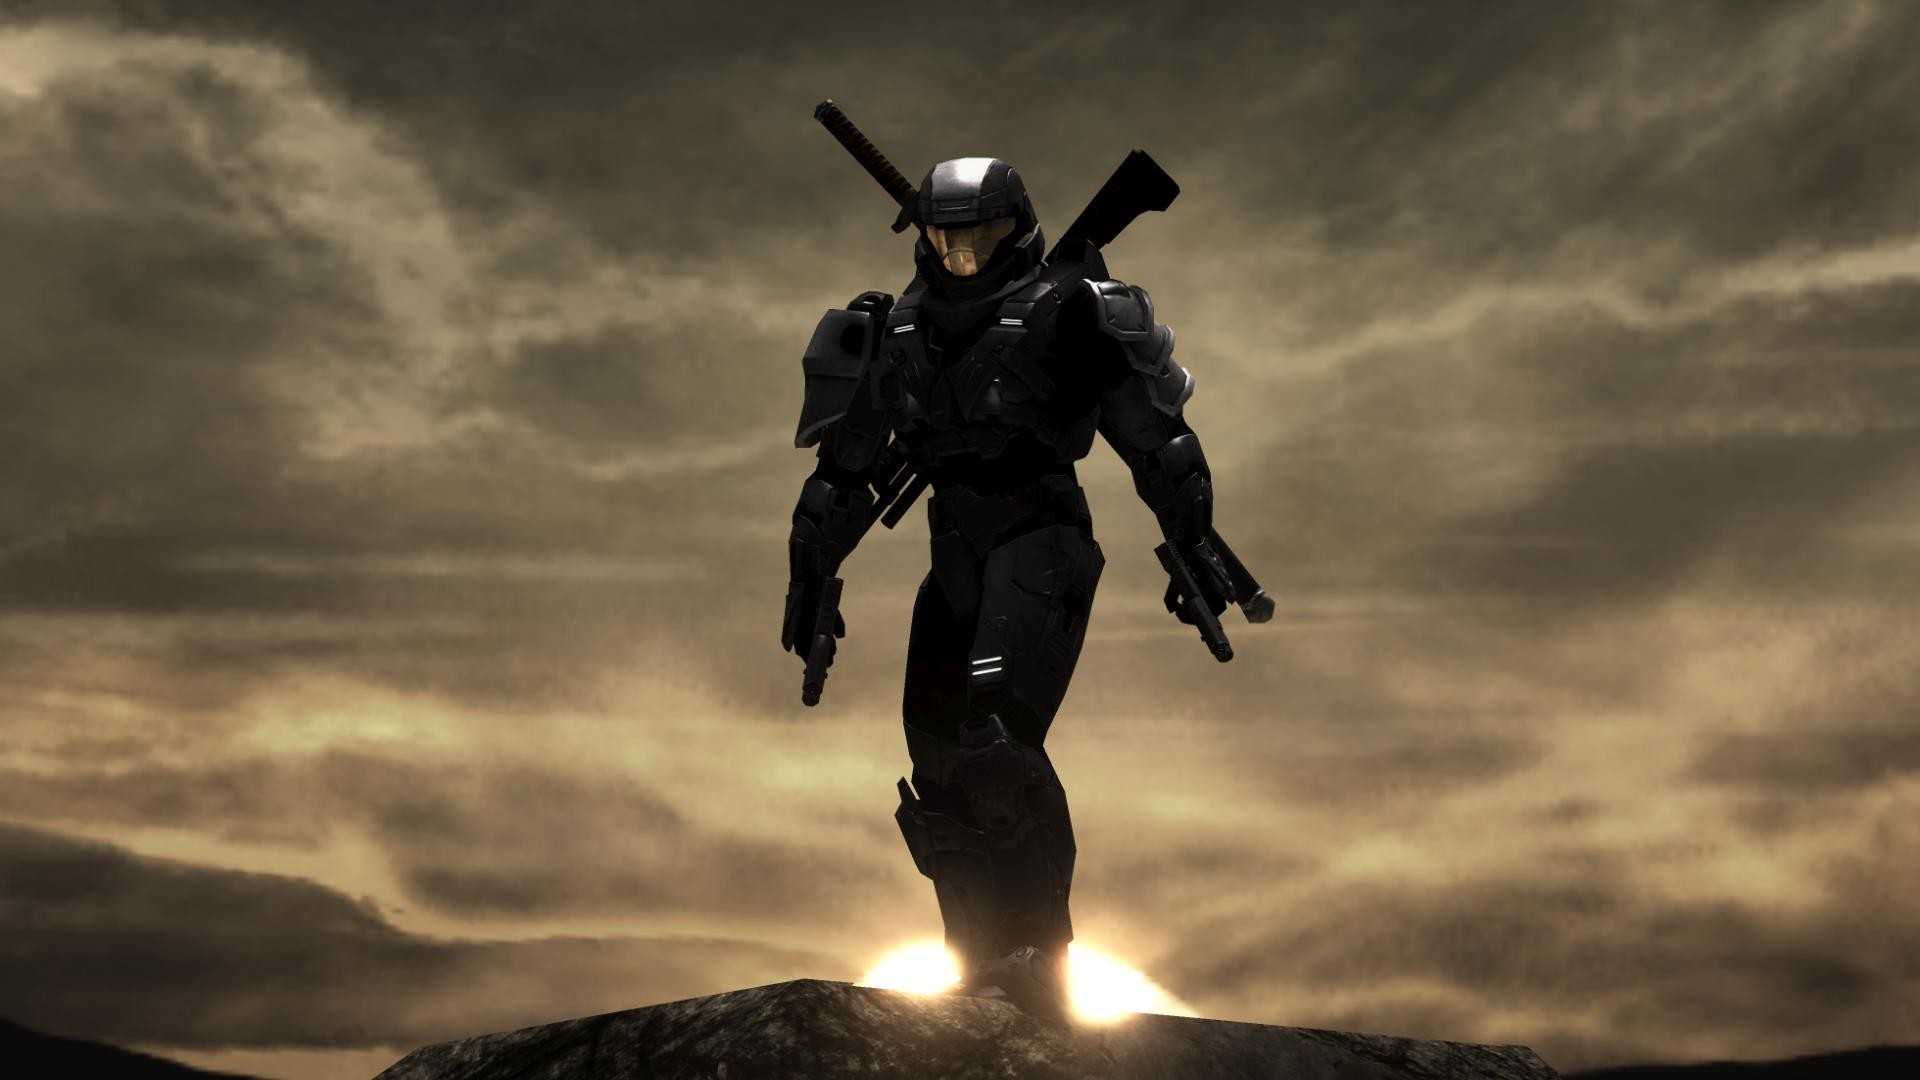 Res: 1920x1080, Halo HD Backgrounds, HQ, Sarai Bray ...